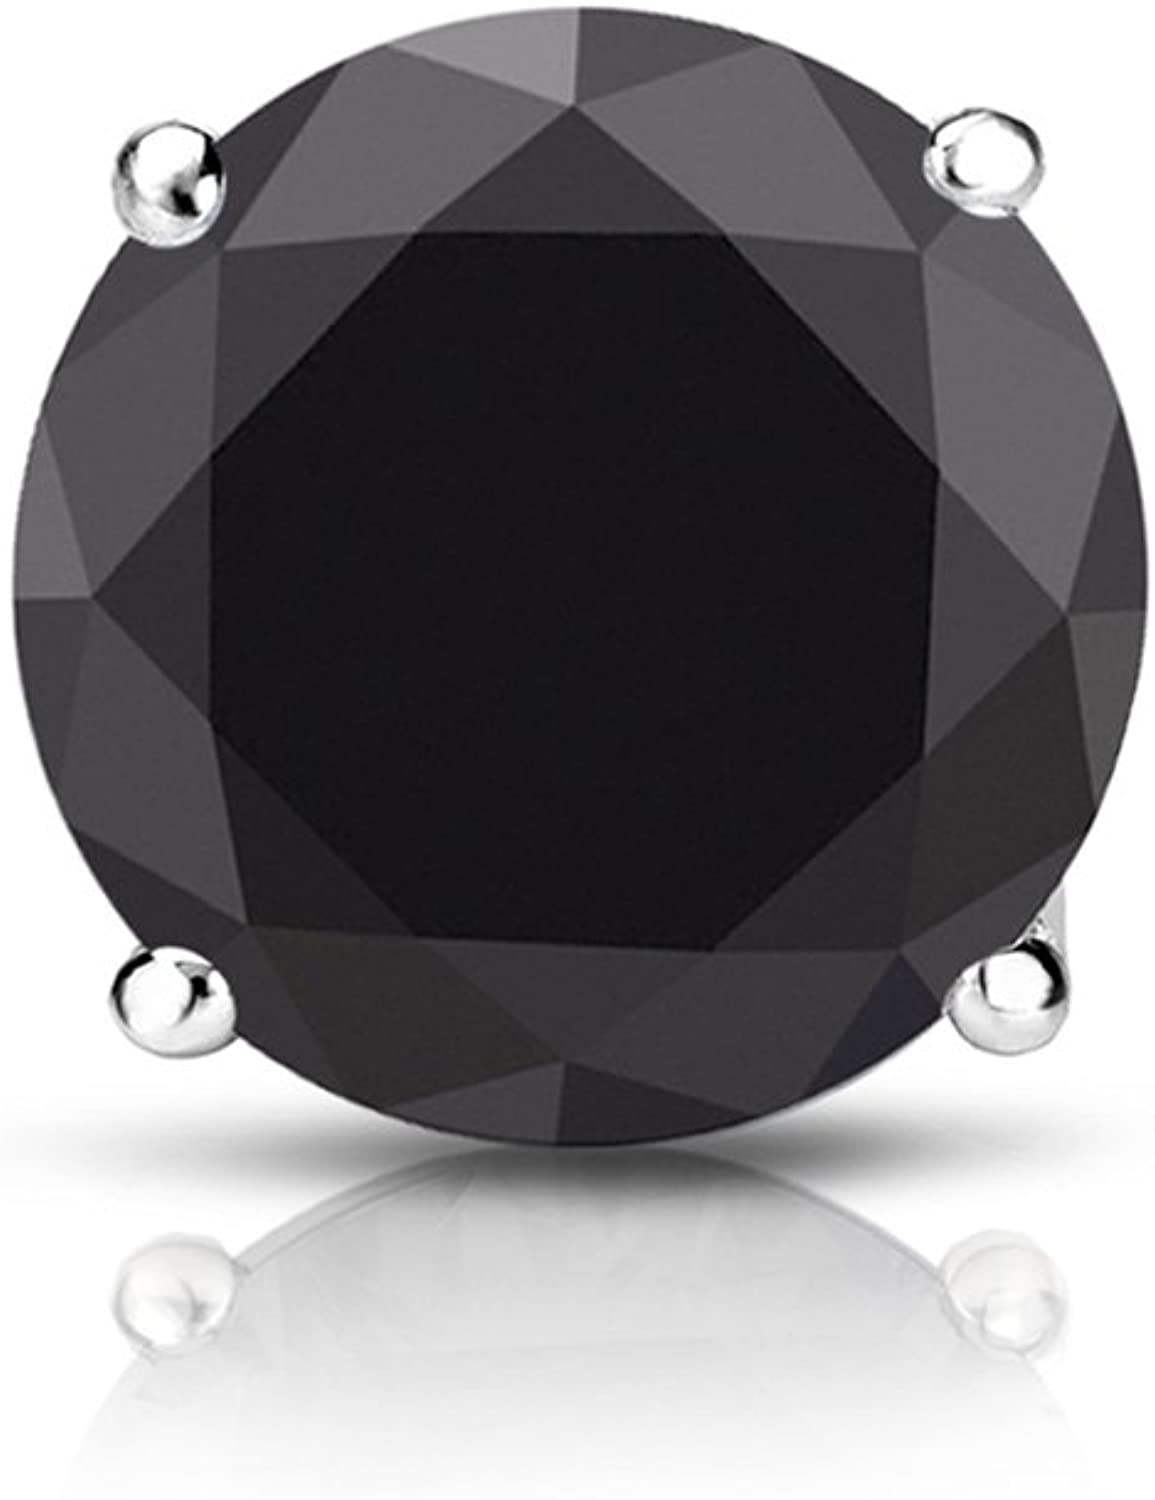 14k White Gold Round SINGLE Black Diamond Stud Earring (0.60cttw) 4-Prong Basket set with Push-back by Diamond Wish